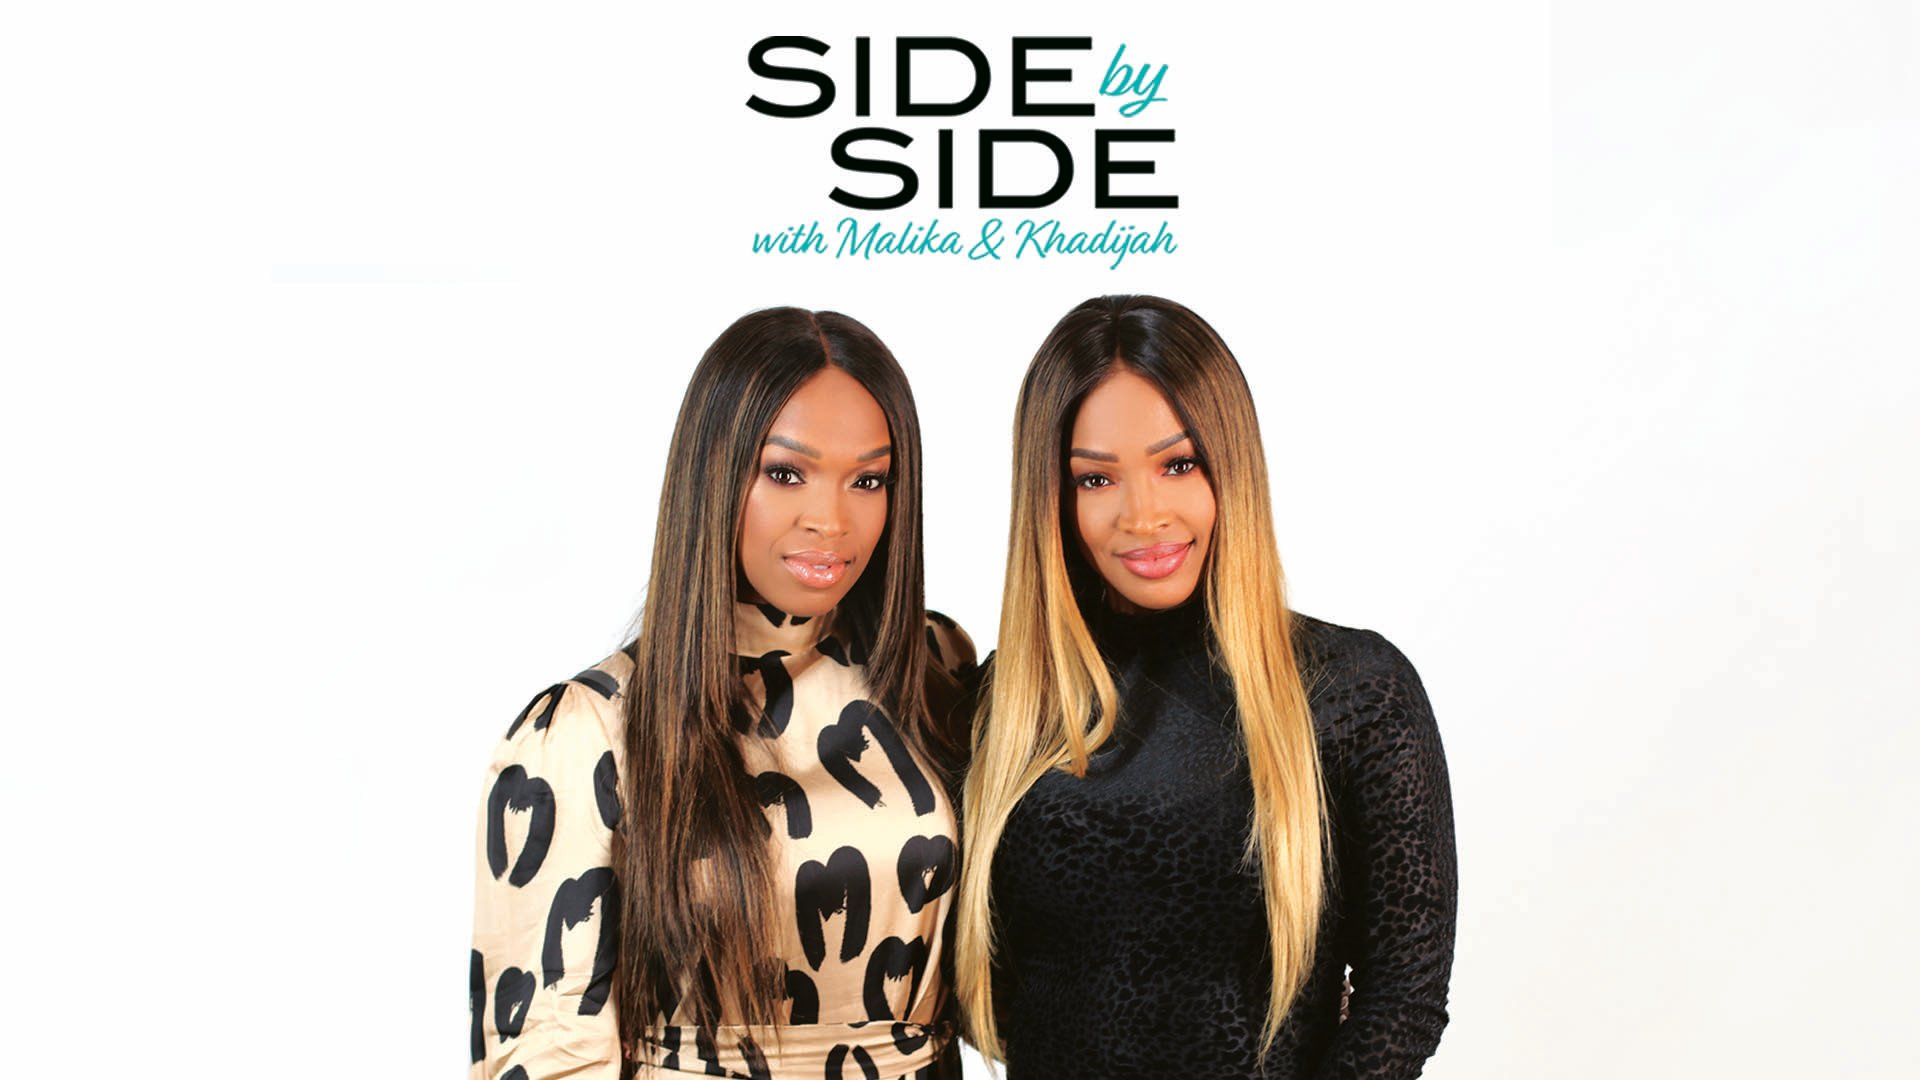 Side by Side with Malika & Khadijah